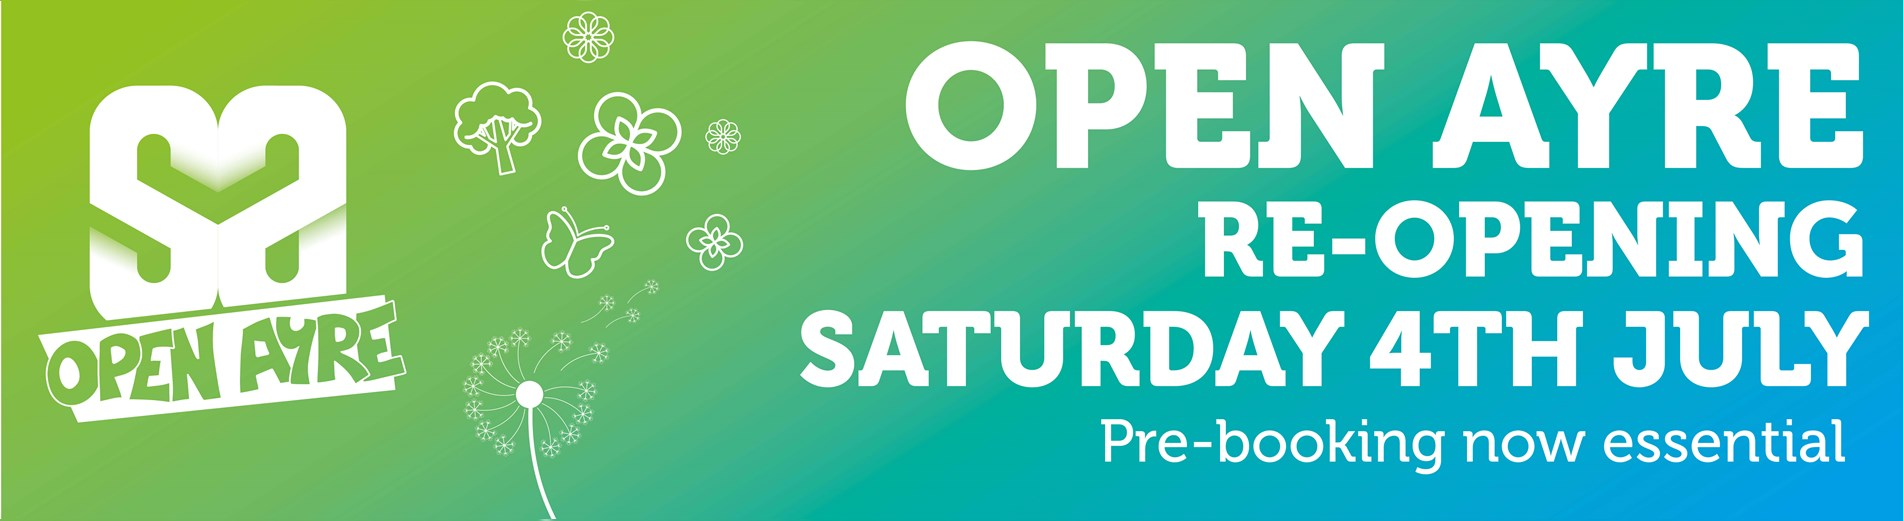 Open Ayre re-opening banner